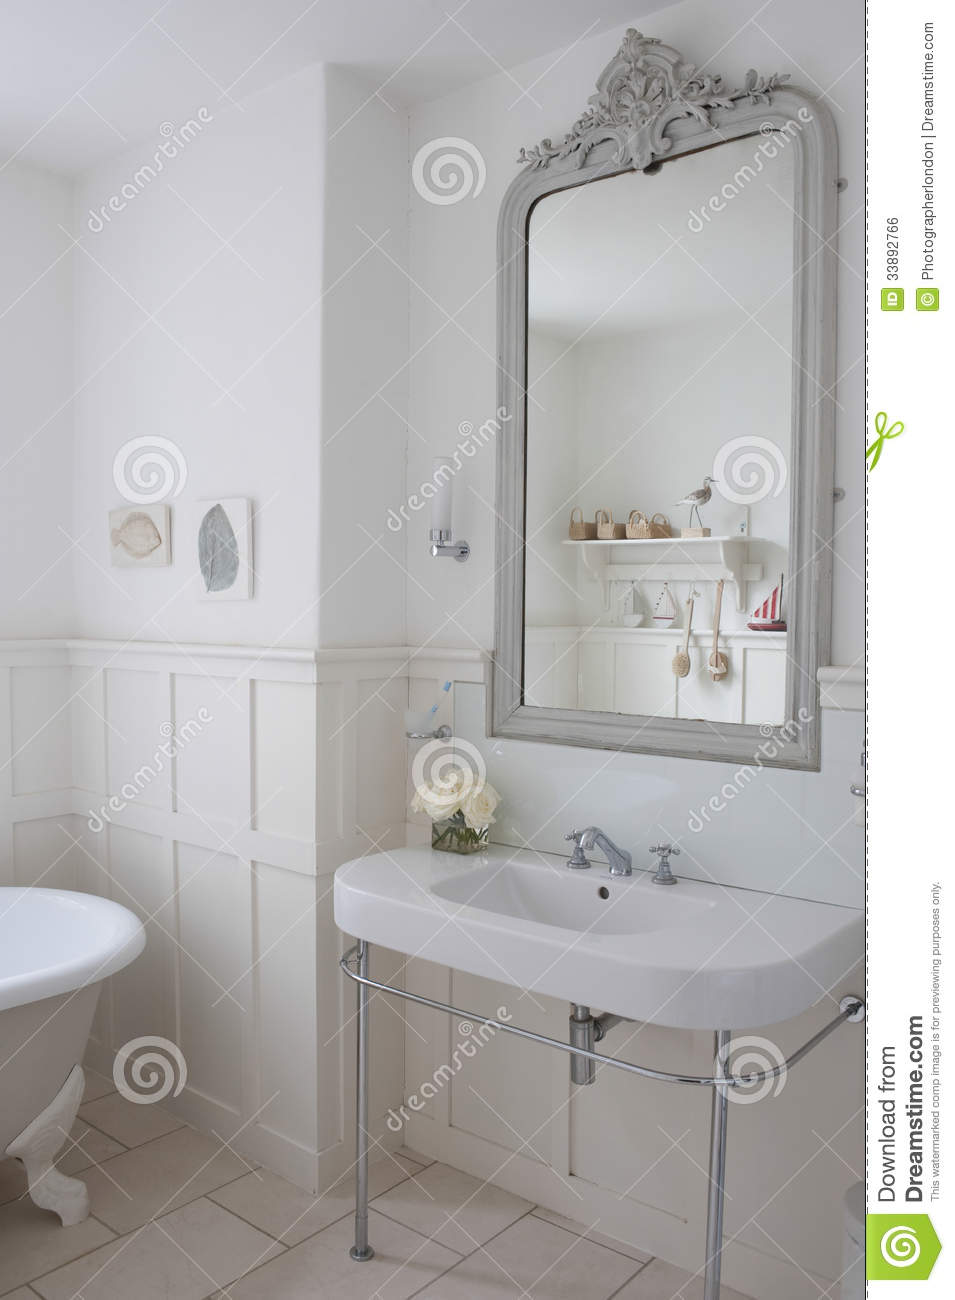 Mirror Above Bathroom Sink Royalty Free Stock Image